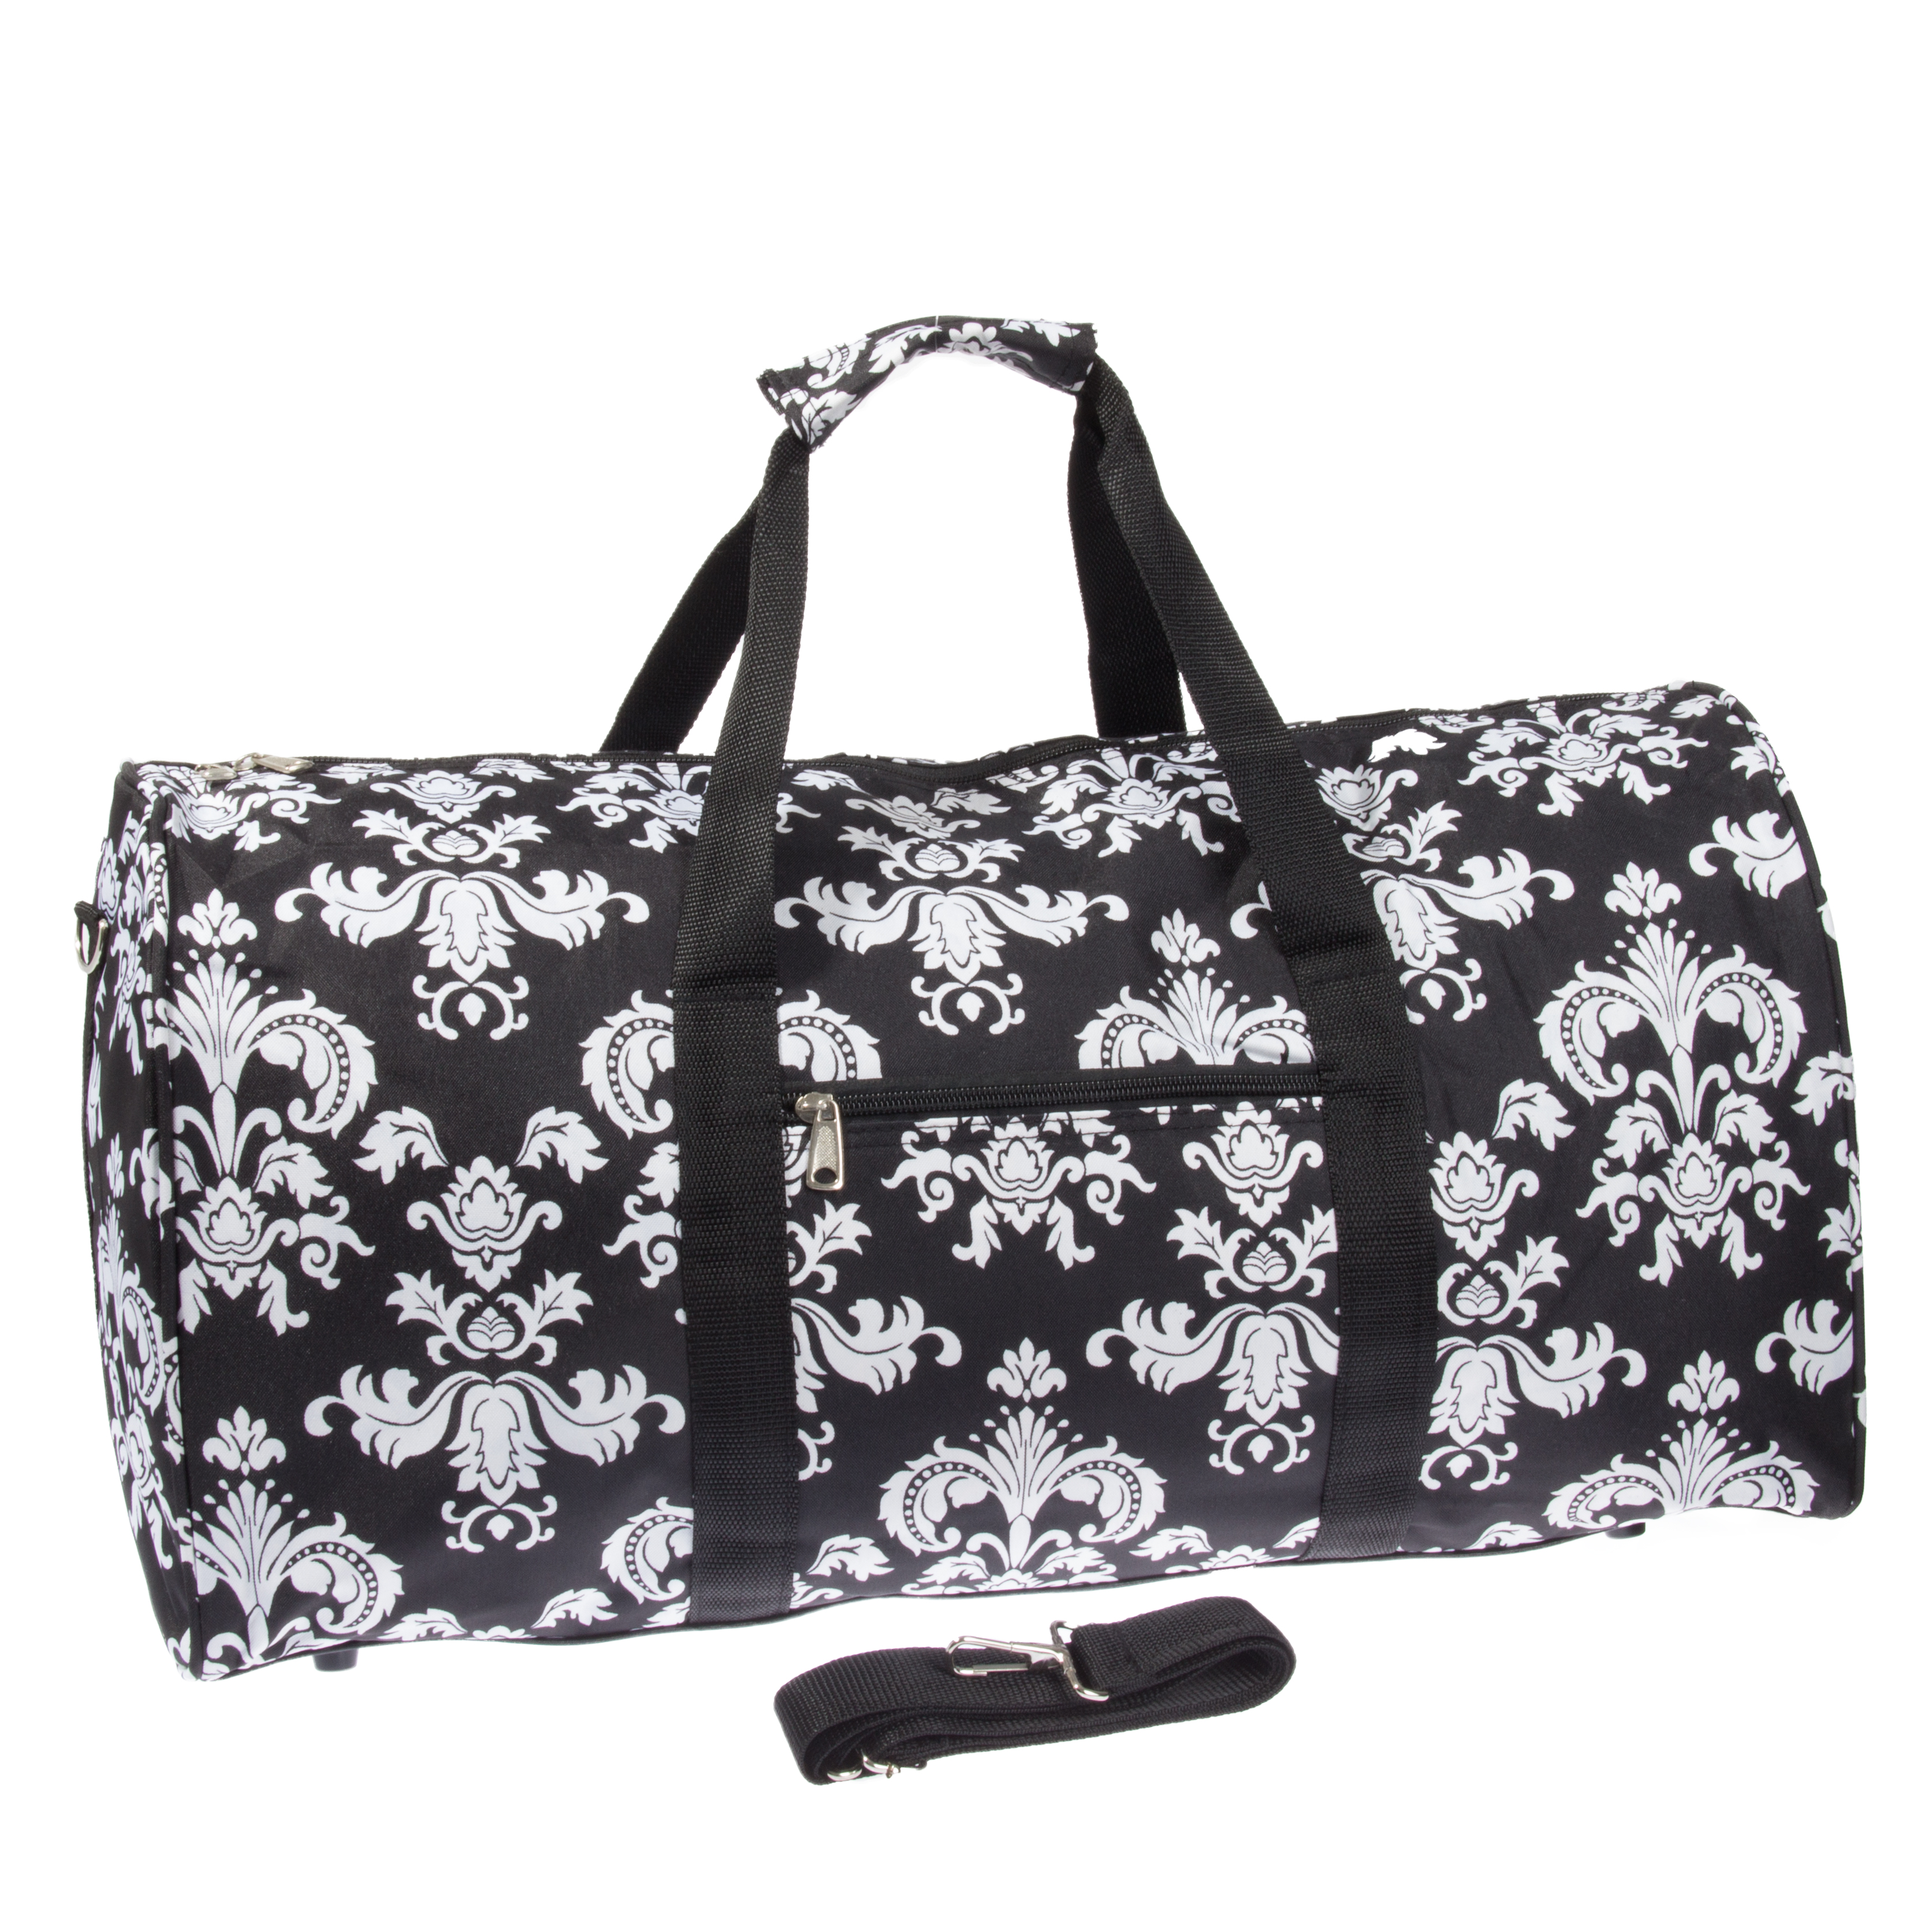 Brilliant Hand Luggage For Women - Mc Luggage